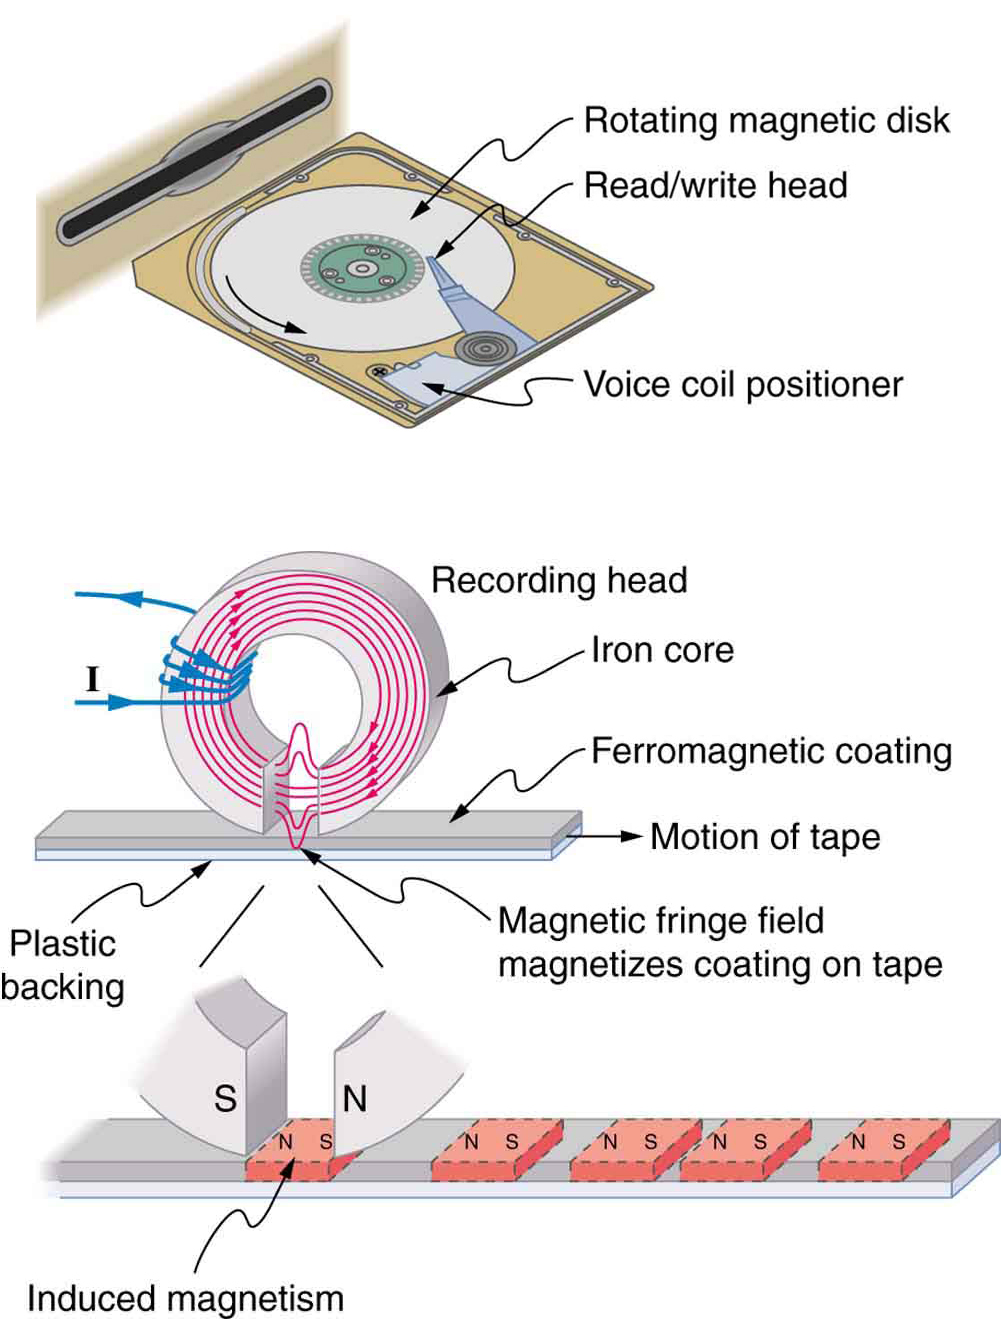 Three views into a computer disk showing the magnetic portions of the recording head and the tape.